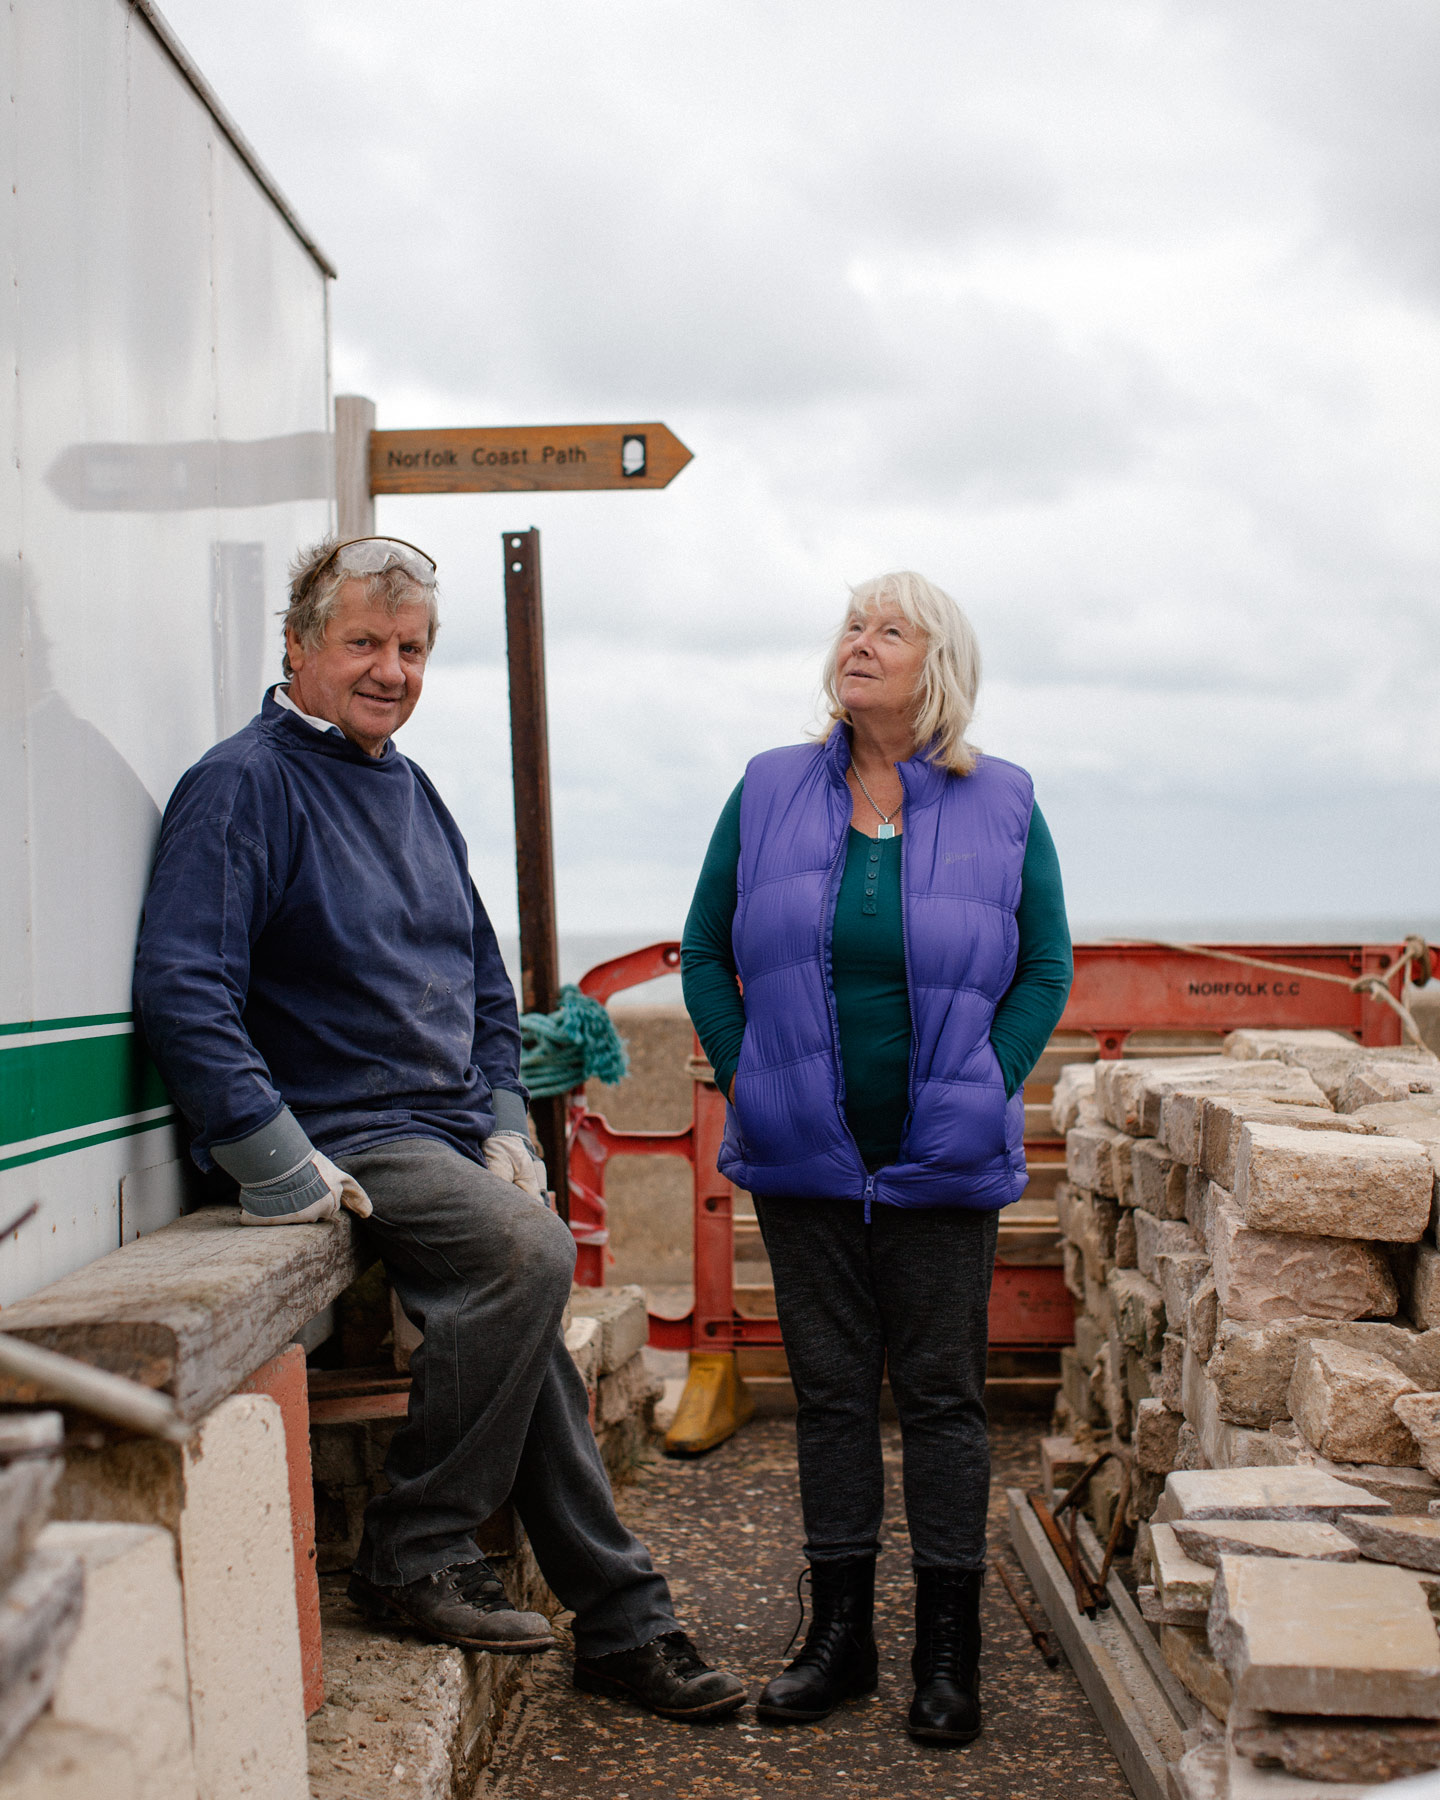 Tony & Yvonne King also lost their home in Bacton, Norfolk, to the tidal surge of 2013.